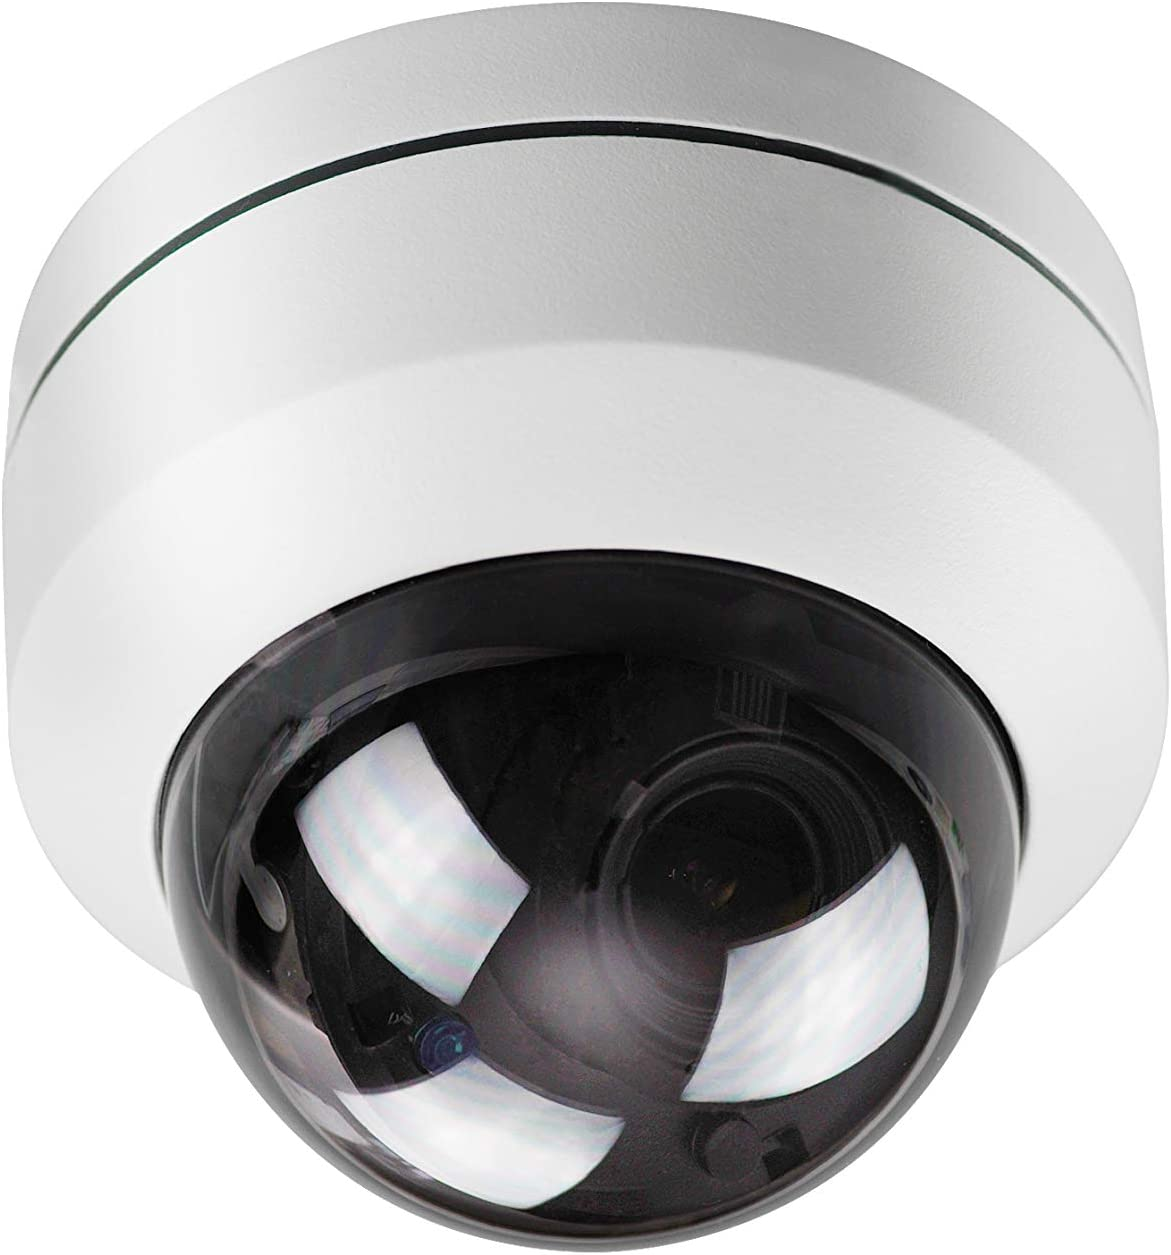 MorphXStar Security H.265 5MP HD (2592 x 1944) p IP High-Speed Onvif Network Dome PTZ Camera 5X Optical Zoom Waterproof Outdoor/Indoor - Justify5 5X PTZ White